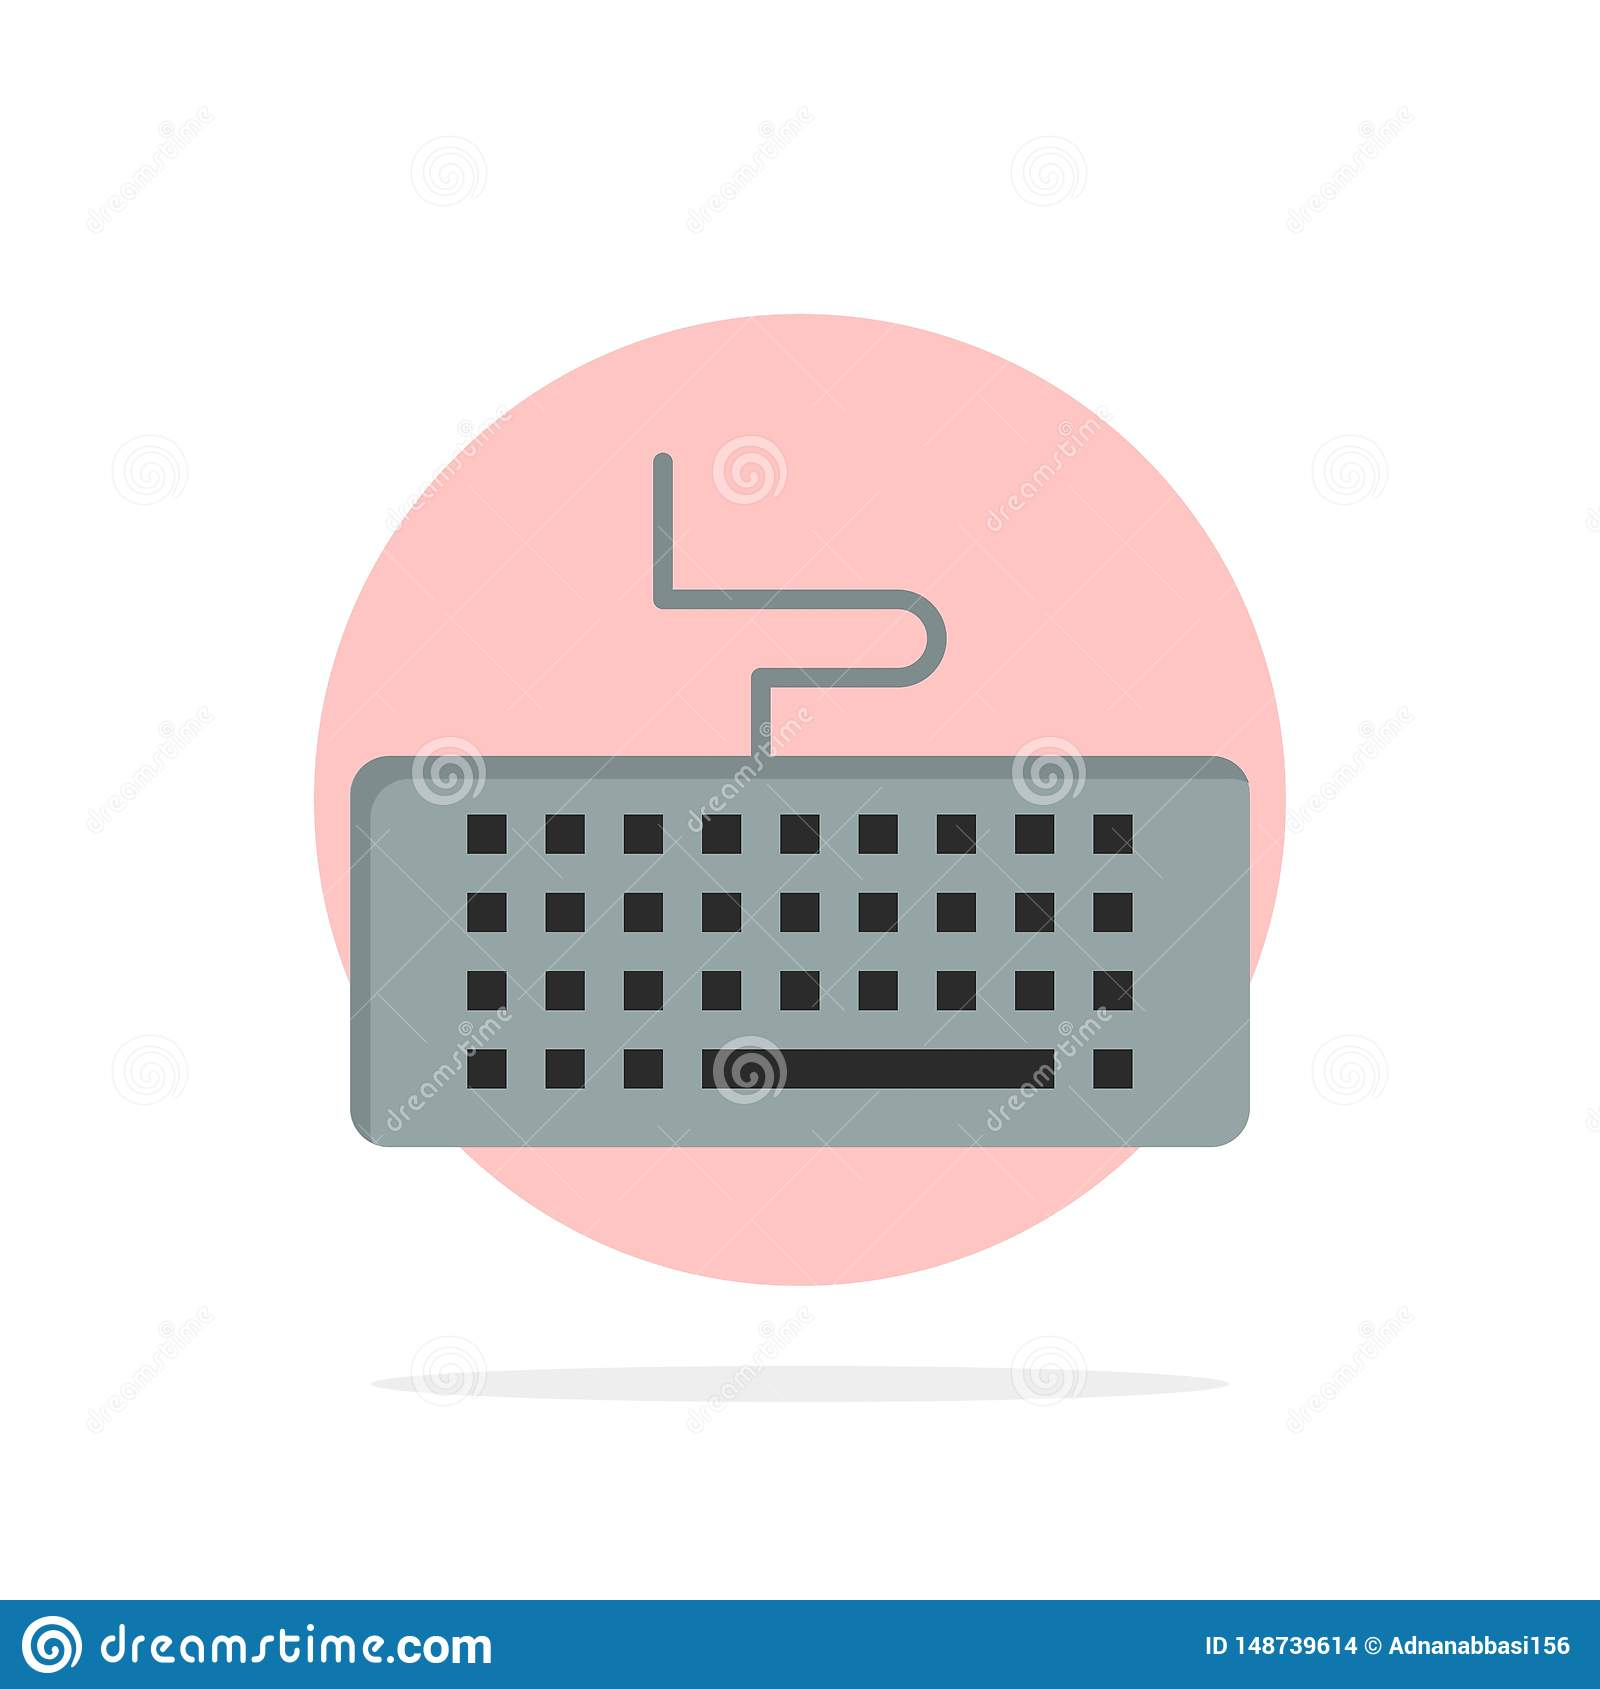 Key, Keyboard, Hardware, Education Abstract Circle Background Flat color Icon